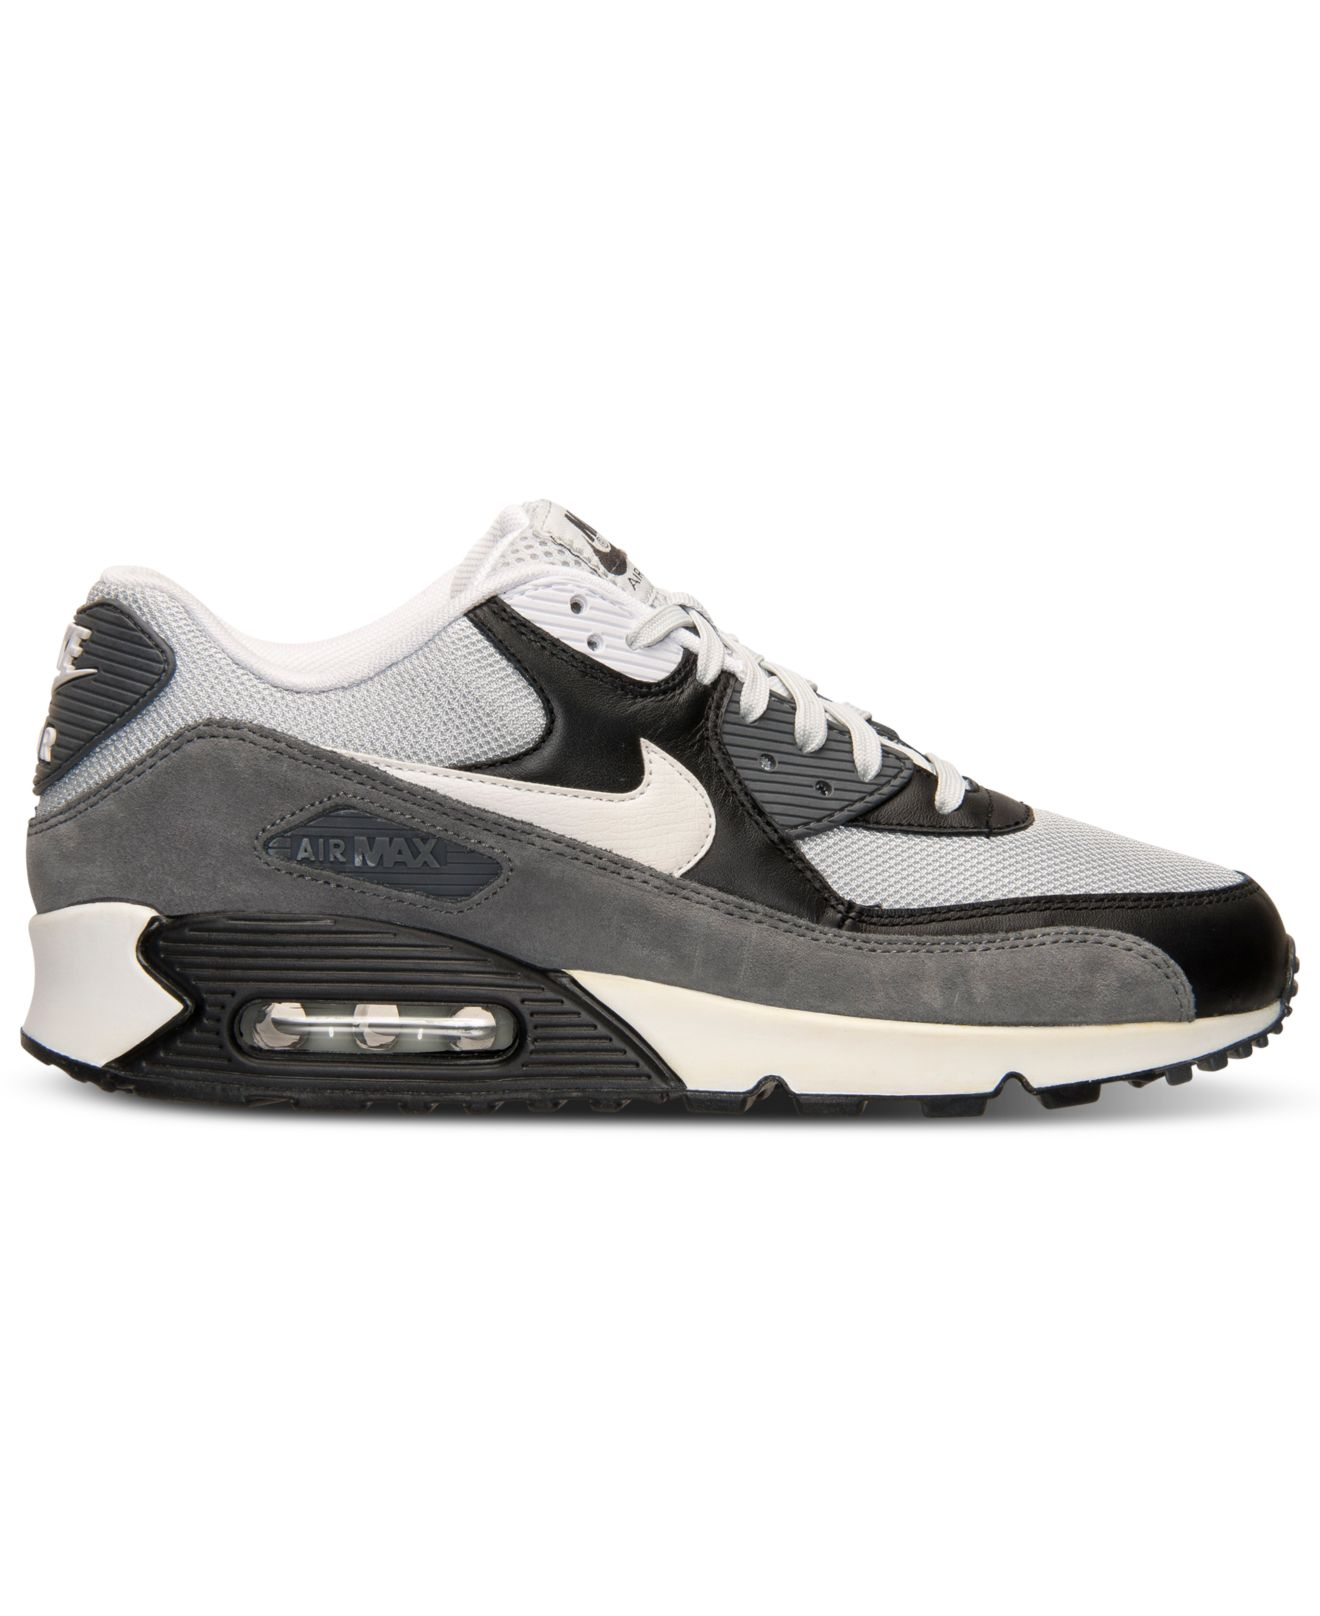 Lyst - Nike Men s Air Max 90 Essential Running Sneakers From Finish ... d65b8d2d8